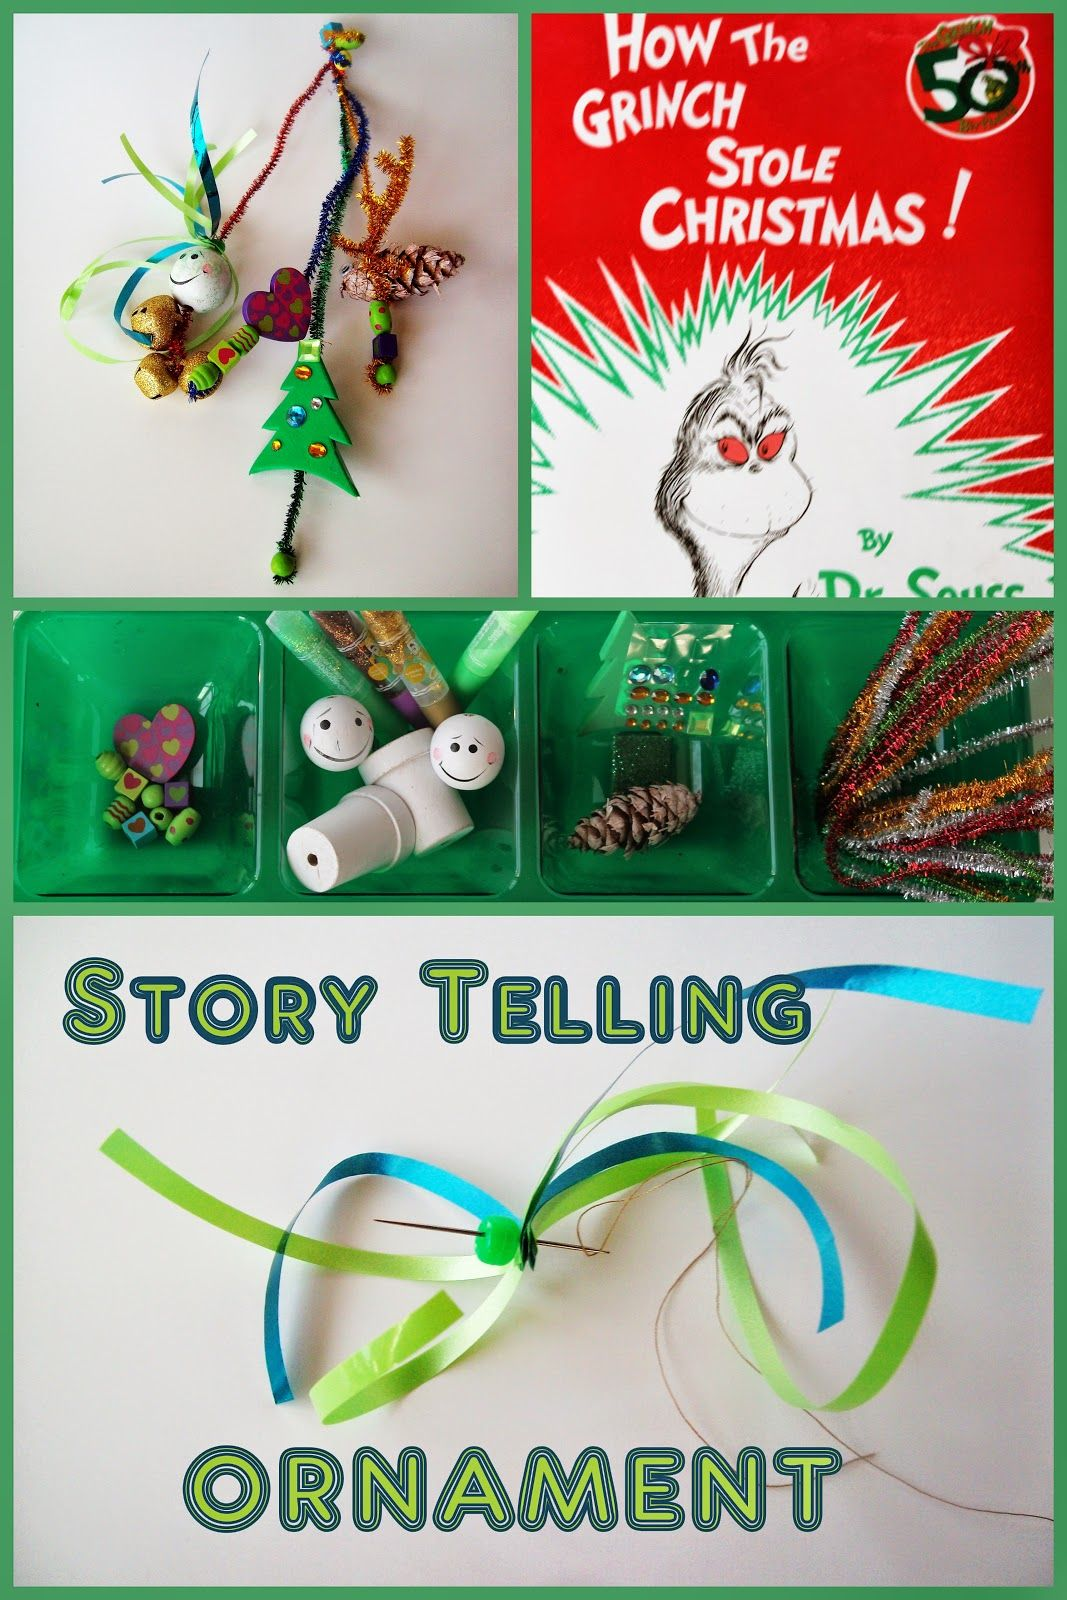 Storytelling Ornament Grinch Stole Christmas Grinch And